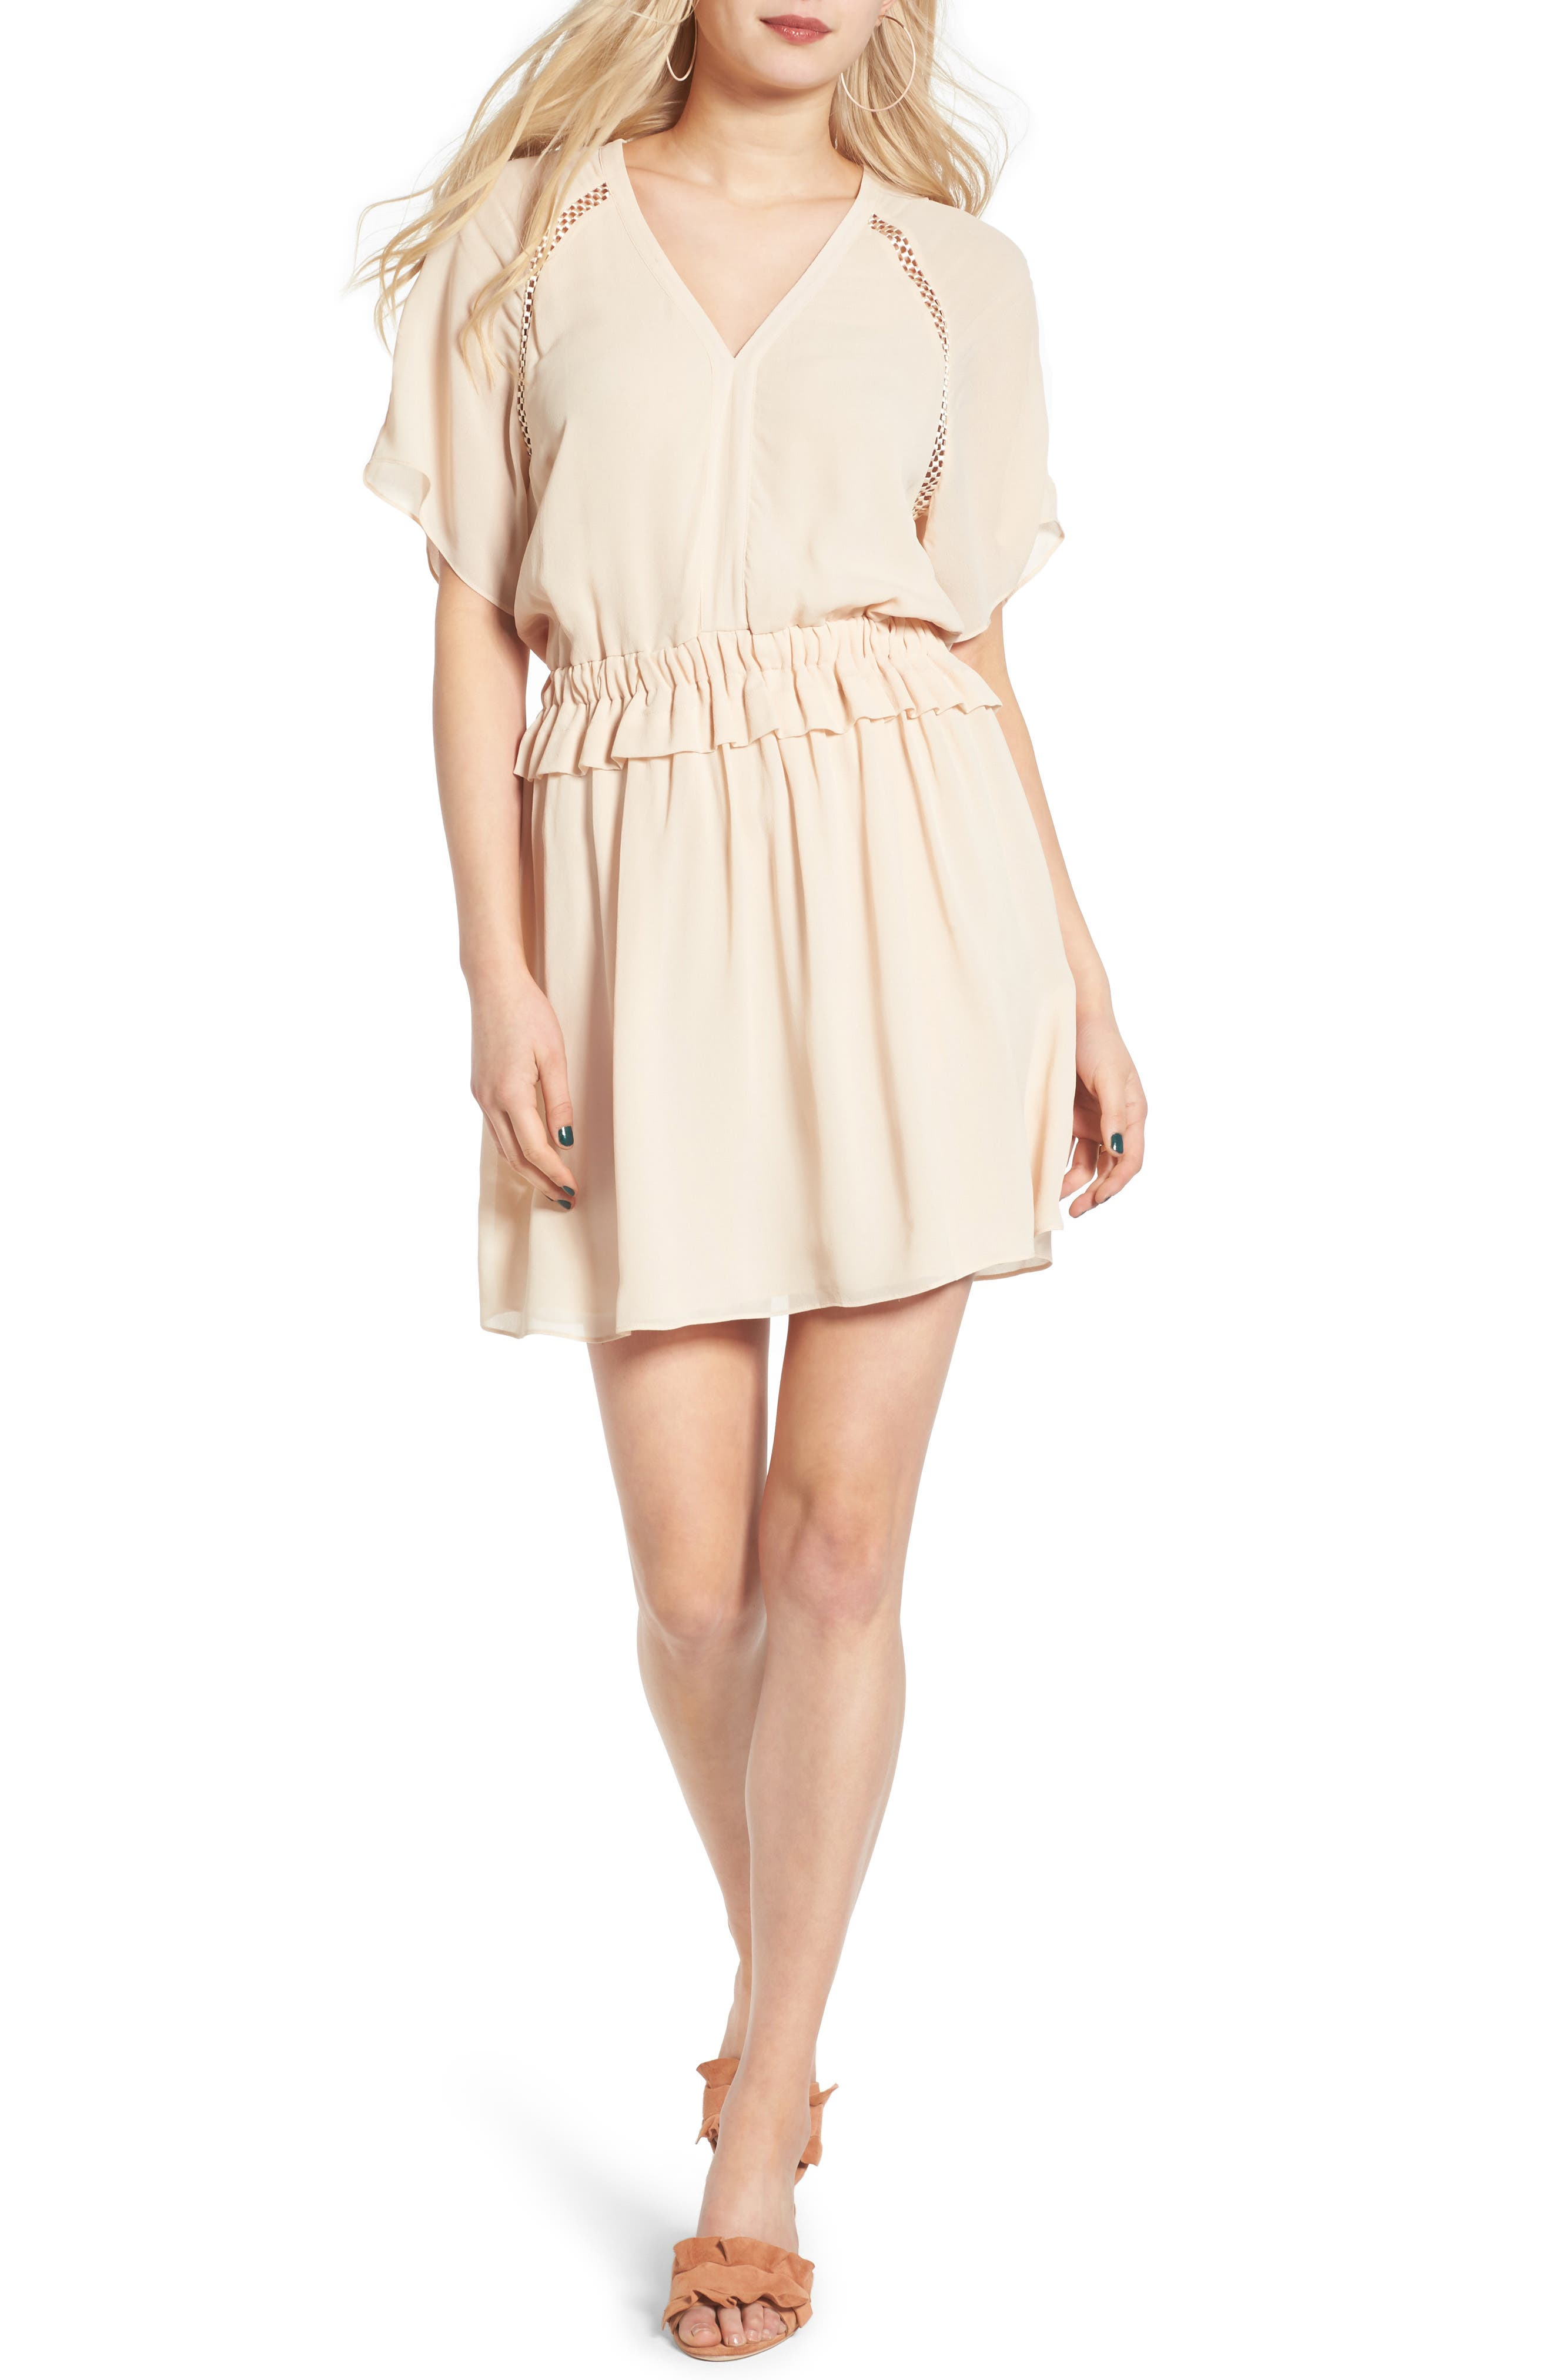 ST. studio Short Sleeve Shift Dress